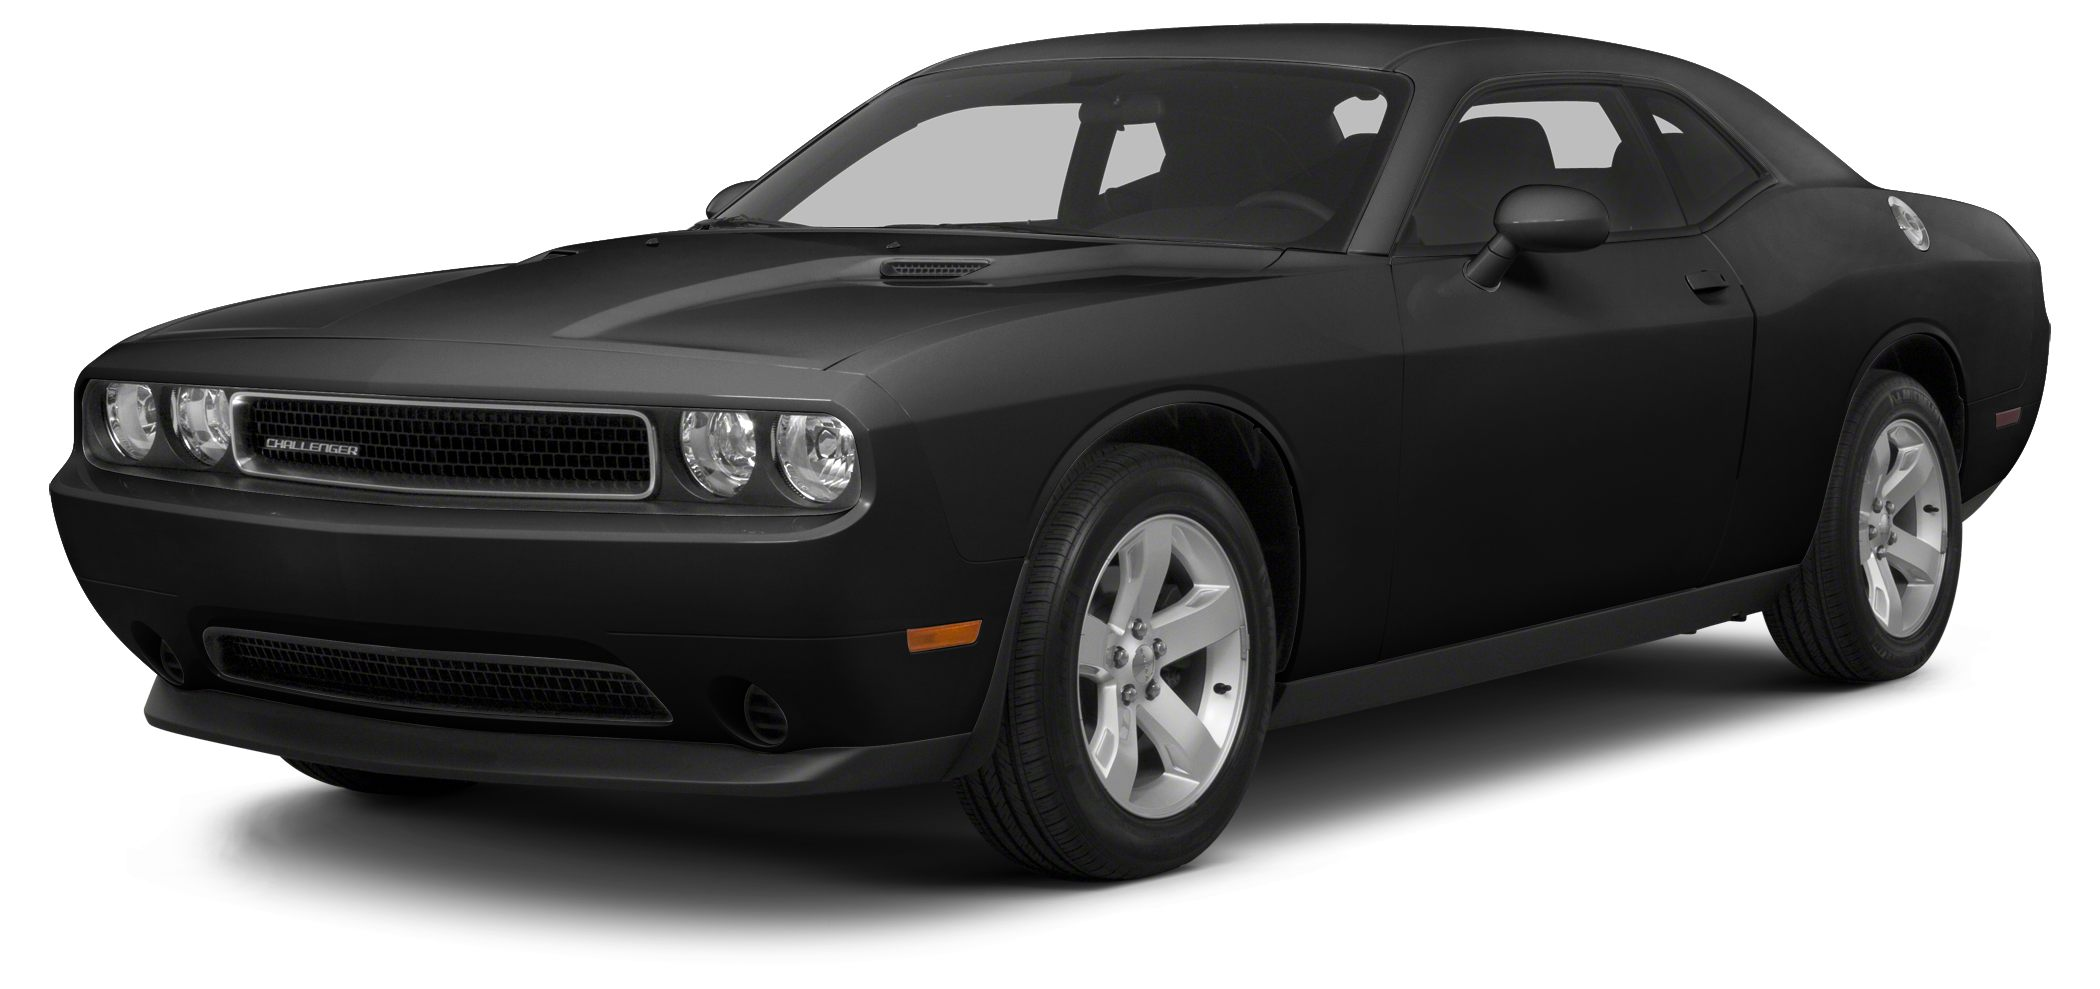 2013 Dodge Challenger SXT In Good Shape GREAT MILES 31773 PRICED TO MOVE 300 below NADA Retail